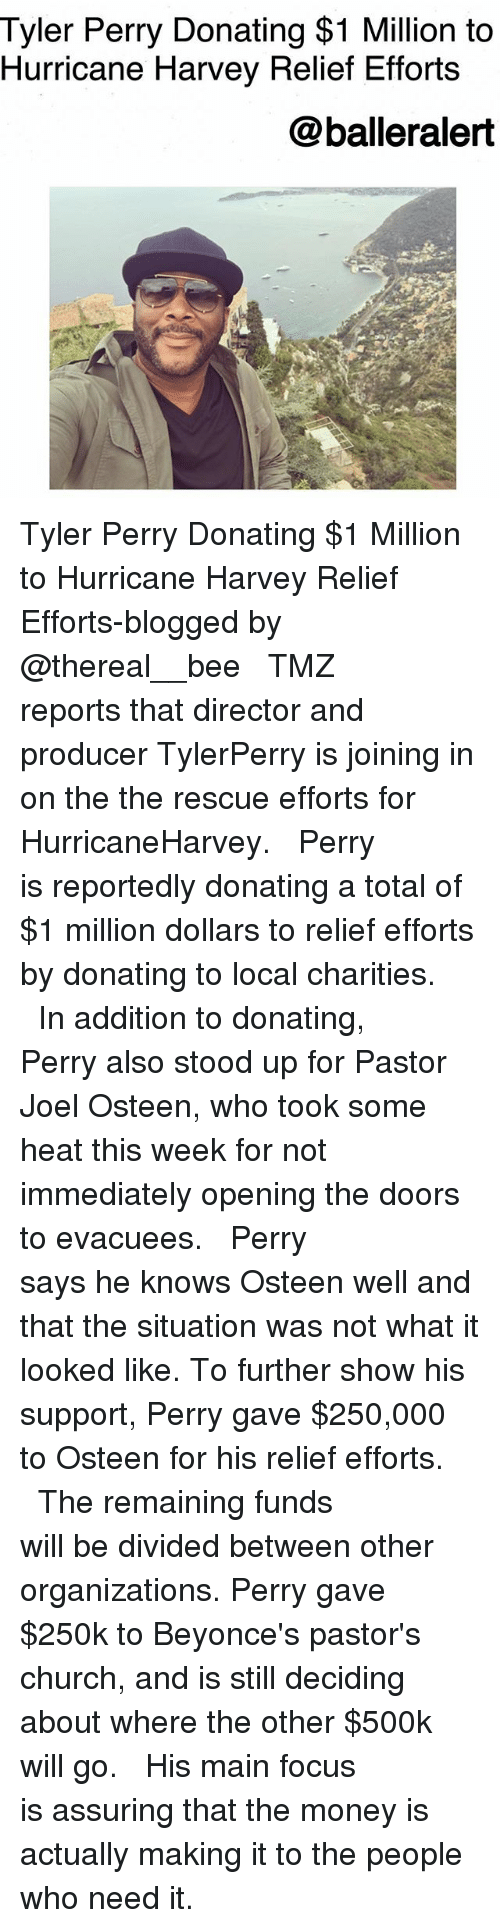 Totaled: Tyler Perry Donating $1 Million to  Hurricane Harvey Relief Efforts  @balleralert Tyler Perry Donating $1 Million to Hurricane Harvey Relief Efforts-blogged by @thereal__bee ⠀⠀⠀⠀⠀⠀⠀⠀⠀ ⠀⠀ TMZ reports that director and producer TylerPerry is joining in on the the rescue efforts for HurricaneHarvey. ⠀⠀⠀⠀⠀⠀⠀⠀⠀ ⠀⠀ Perry is reportedly donating a total of $1 million dollars to relief efforts by donating to local charities. ⠀⠀⠀⠀⠀⠀⠀⠀⠀ ⠀⠀ In addition to donating, Perry also stood up for Pastor Joel Osteen, who took some heat this week for not immediately opening the doors to evacuees. ⠀⠀⠀⠀⠀⠀⠀⠀⠀ ⠀⠀ Perry says he knows Osteen well and that the situation was not what it looked like. To further show his support, Perry gave $250,000 to Osteen for his relief efforts. ⠀⠀⠀⠀⠀⠀⠀⠀⠀ ⠀⠀ The remaining funds will be divided between other organizations. Perry gave $250k to Beyonce's pastor's church, and is still deciding about where the other $500k will go. ⠀⠀⠀⠀⠀⠀⠀⠀⠀ ⠀⠀ His main focus is assuring that the money is actually making it to the people who need it.